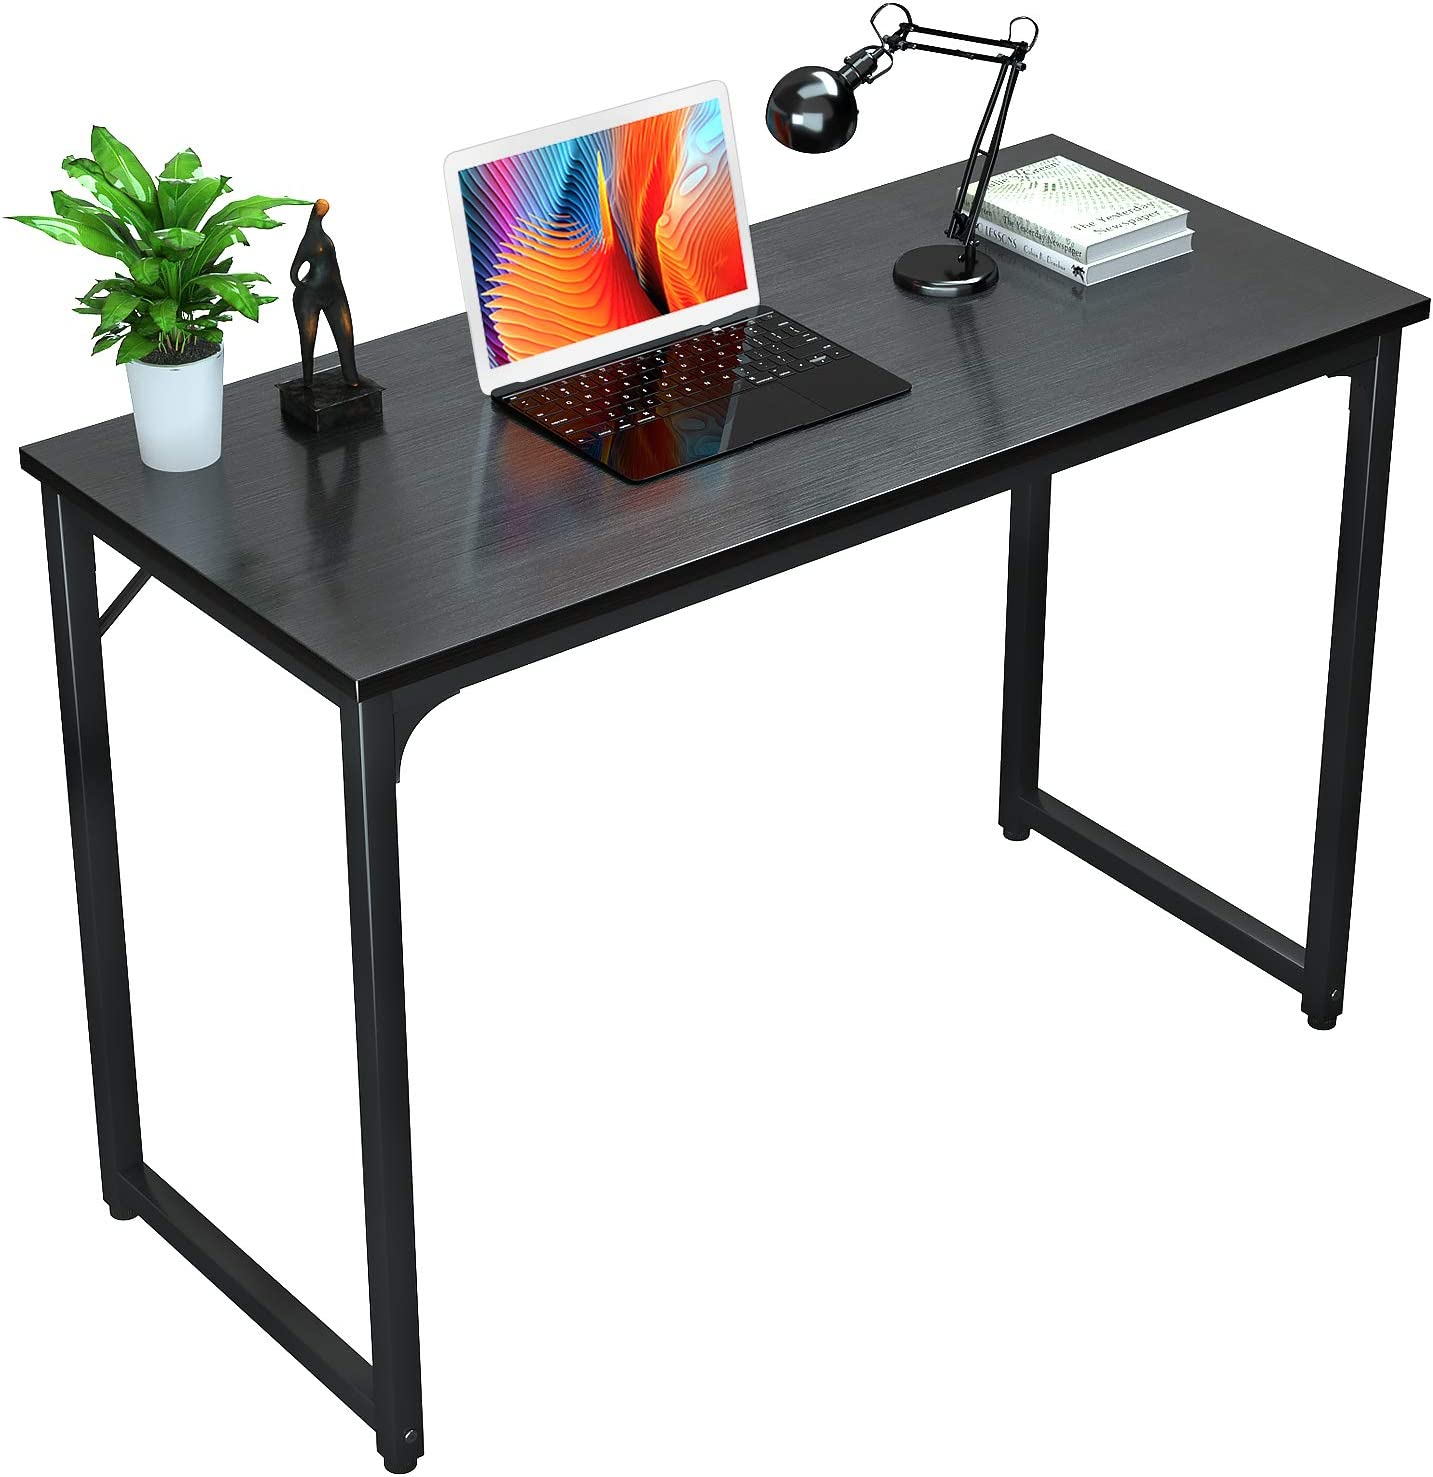 "Foxemart Writing Computer Table Modern Sturdy Office Desk 32"" PC Laptop Notebook Study Desk for Home Office Workstation, Black"